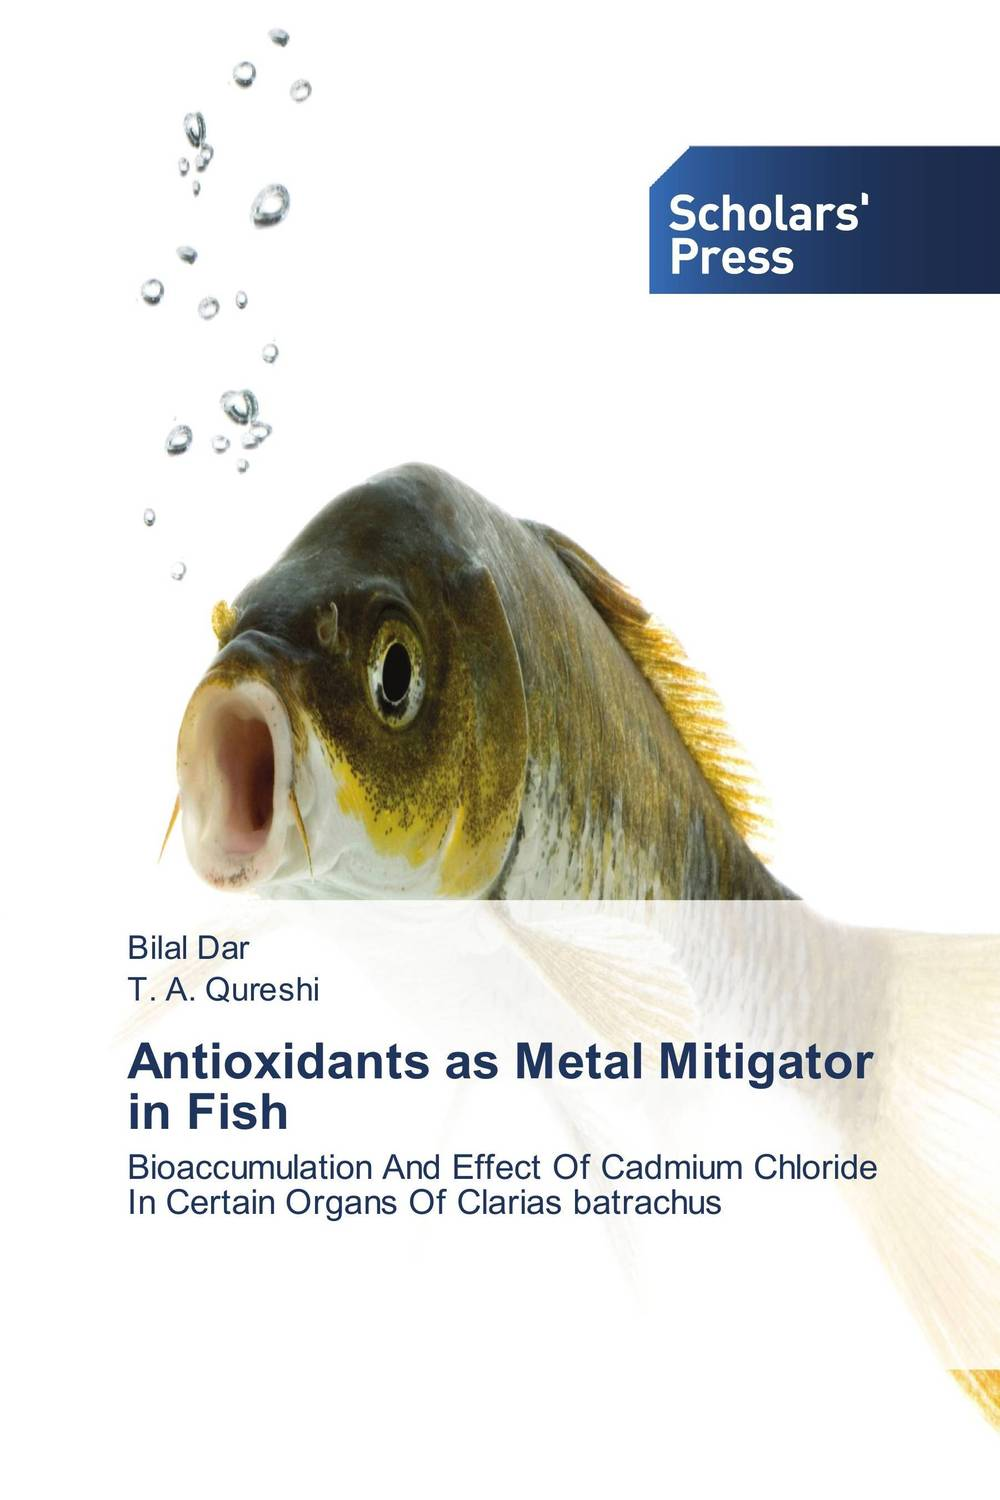 Antioxidants as Metal Mitigator in Fish cadmium from earth crust to fish tissues